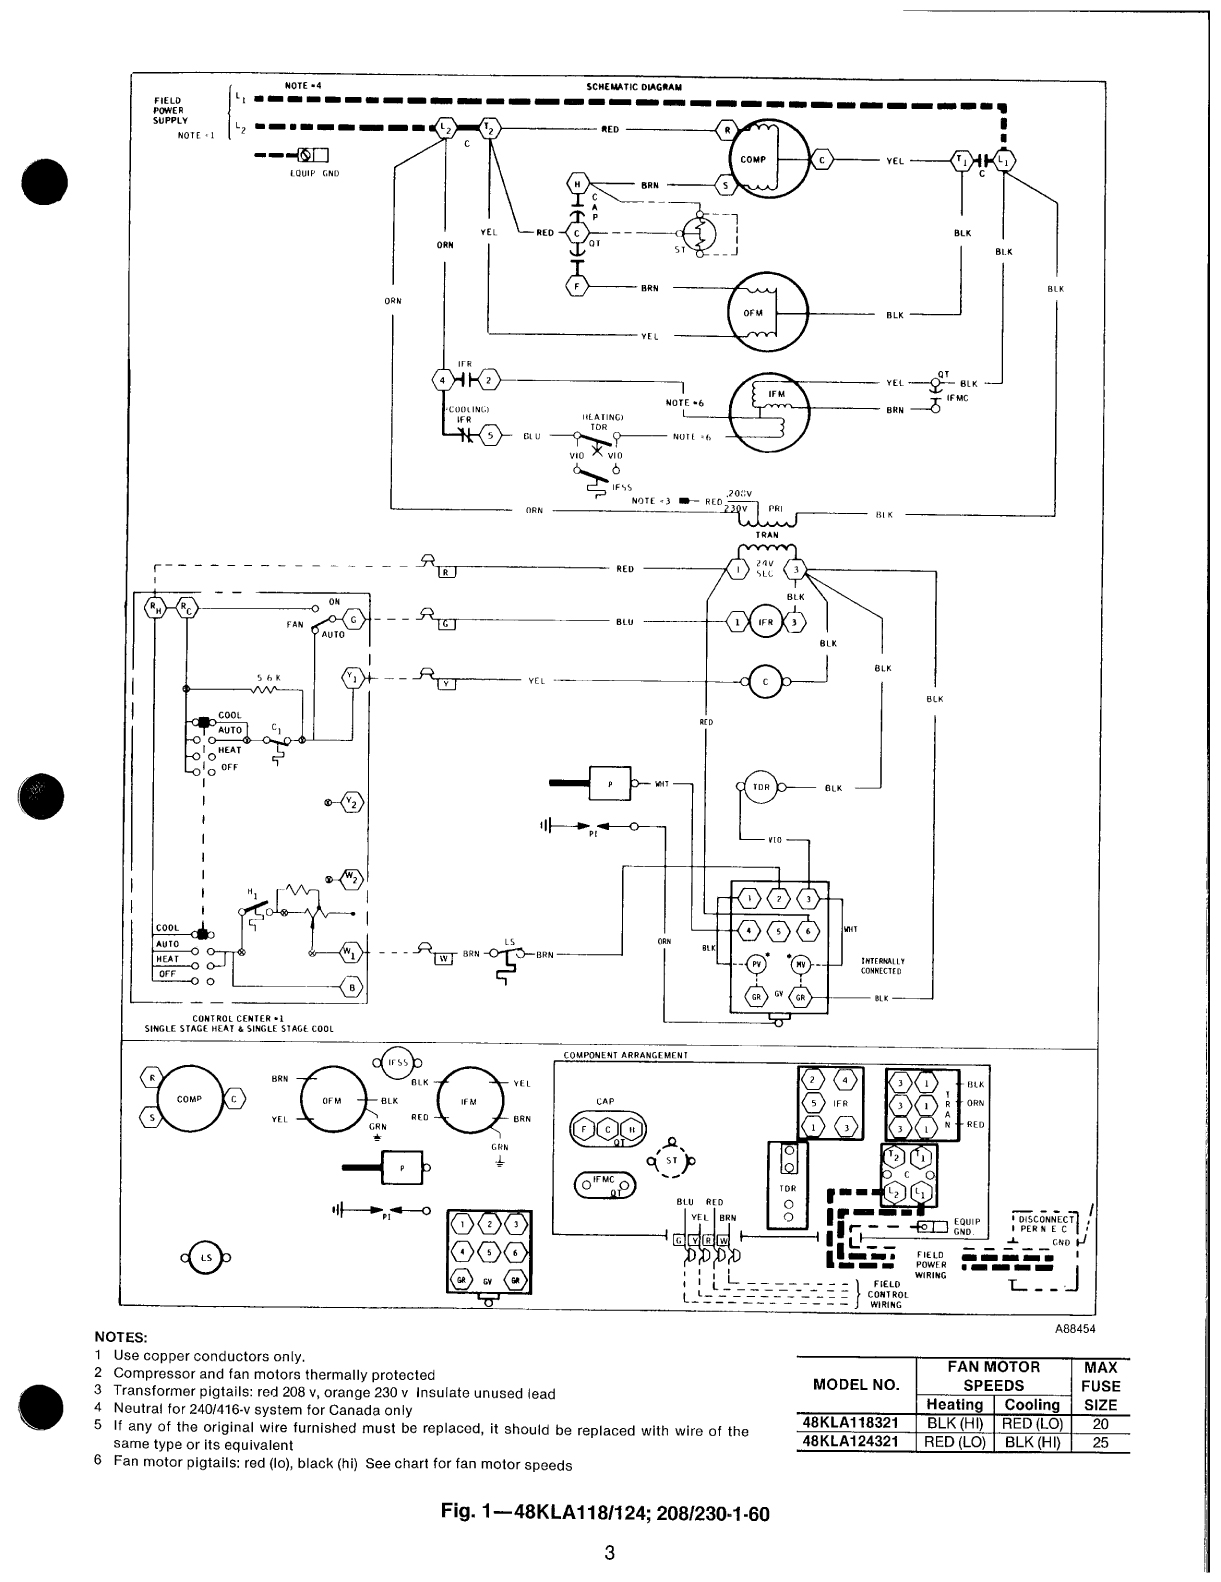 Old Carrier 48 Dl Wiring Diagram Diagrams Residential Rick Do Yo Have Time Now To Work On A Hvac Heating Commercial Model Numbers